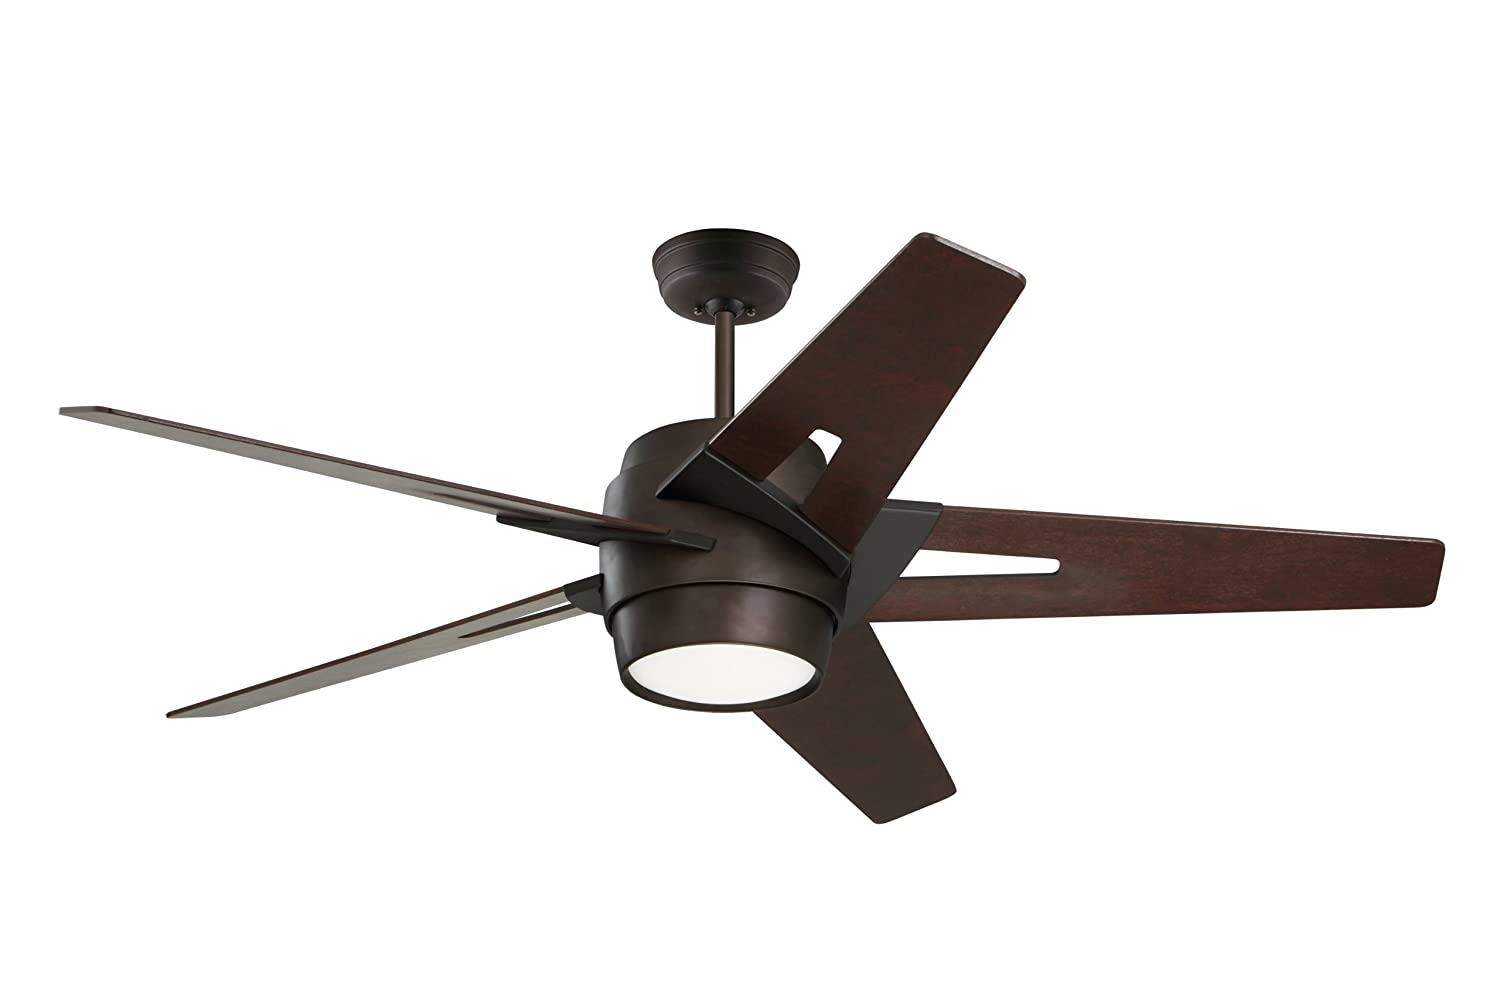 Emerson Ceiling Fans Cf550dmorb Luxe Eco Modern Fan With Wiring Diagram On Motor Light And Wall Control 54 Inch Blades Oil Rubbed Bronze Finish Close To